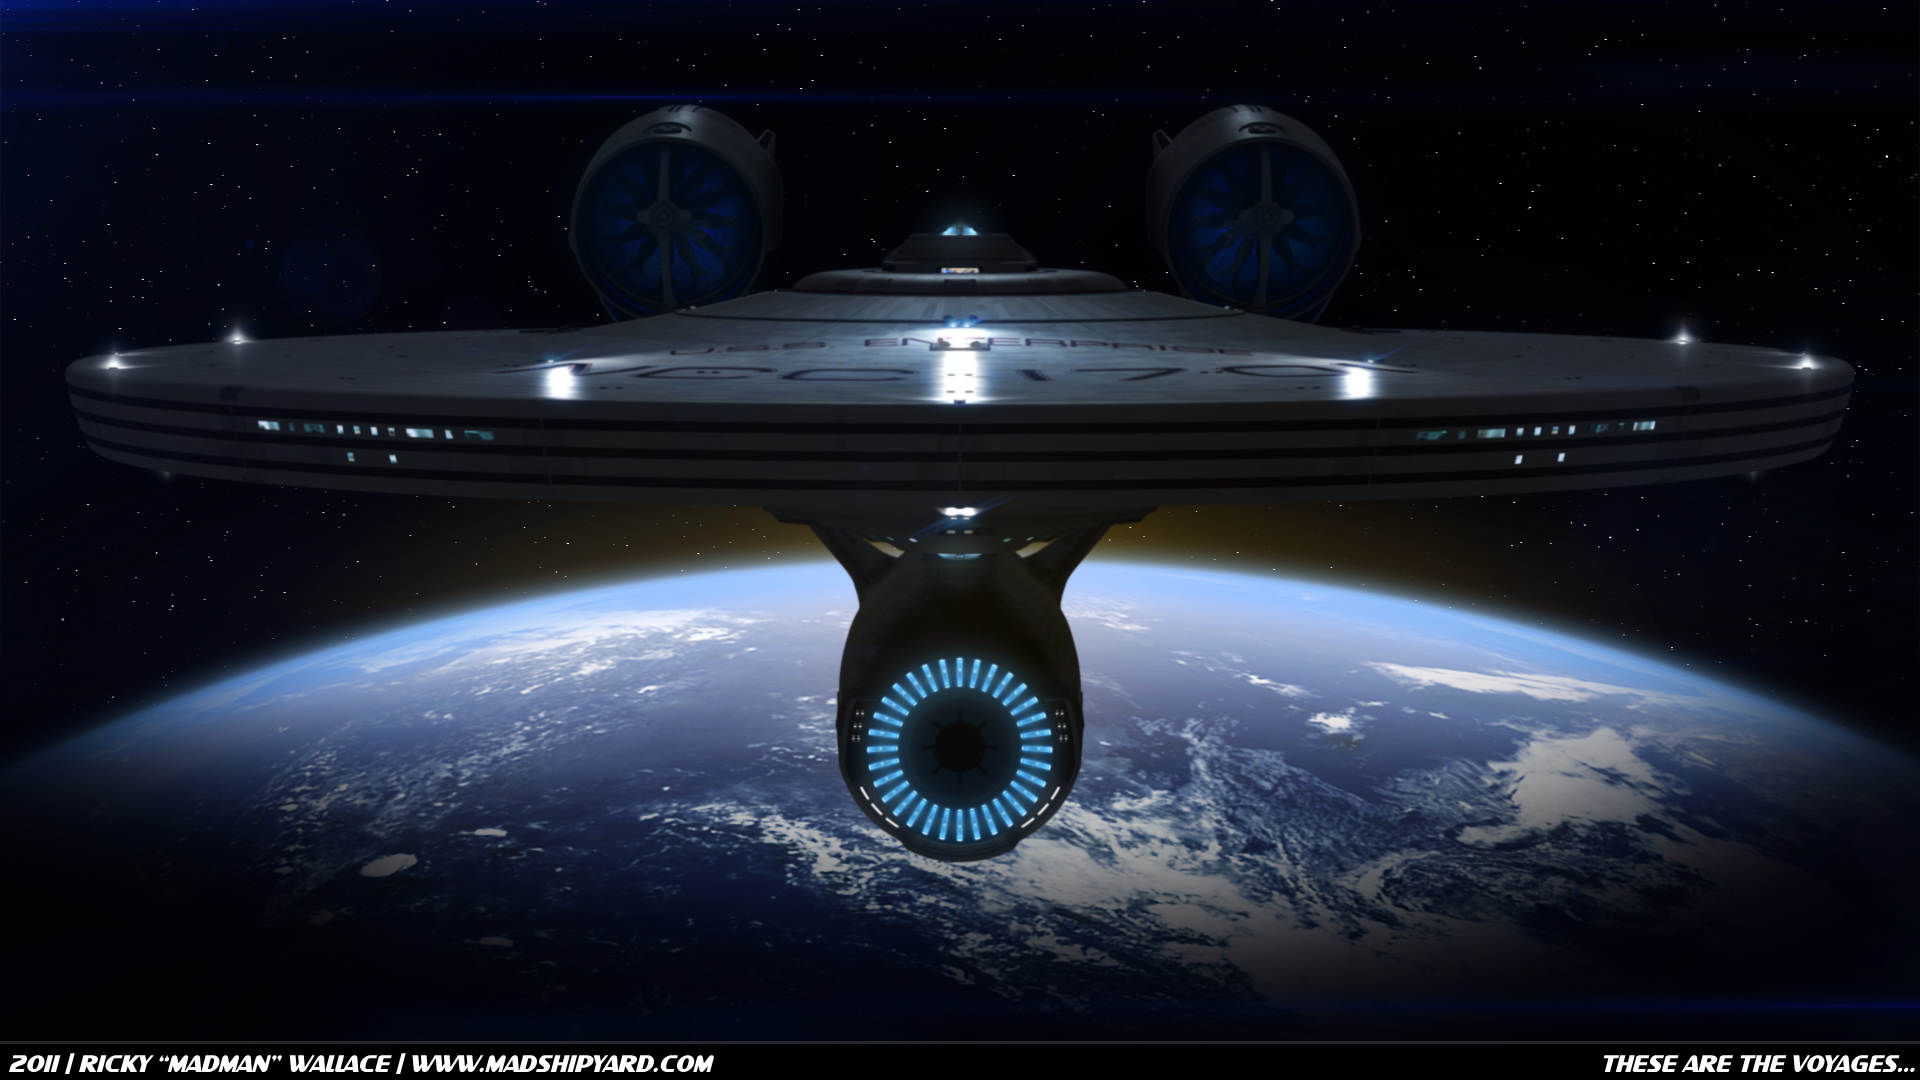 a captains log of communications at the uss enterprise See more of uss enterprise 1701 d on  shops and commercial locations than aboard the enterprise according to orders from captain  crew log book (written in the.